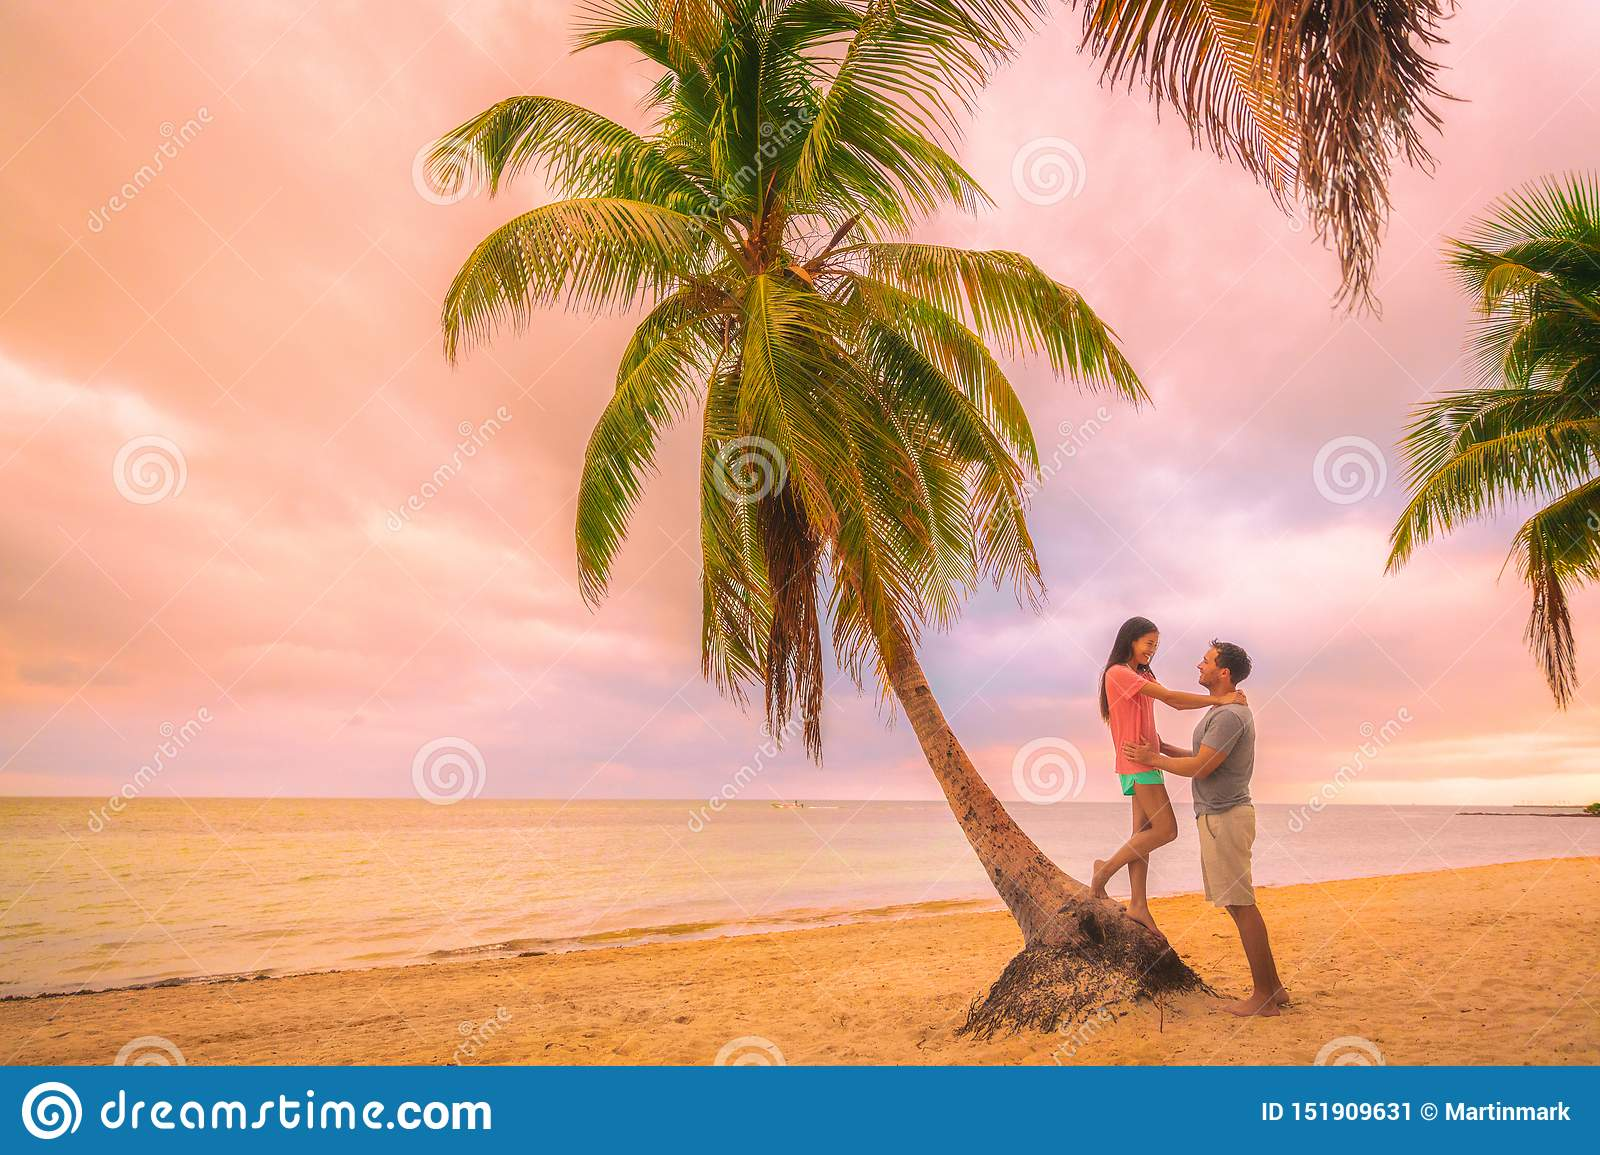 Palm dating